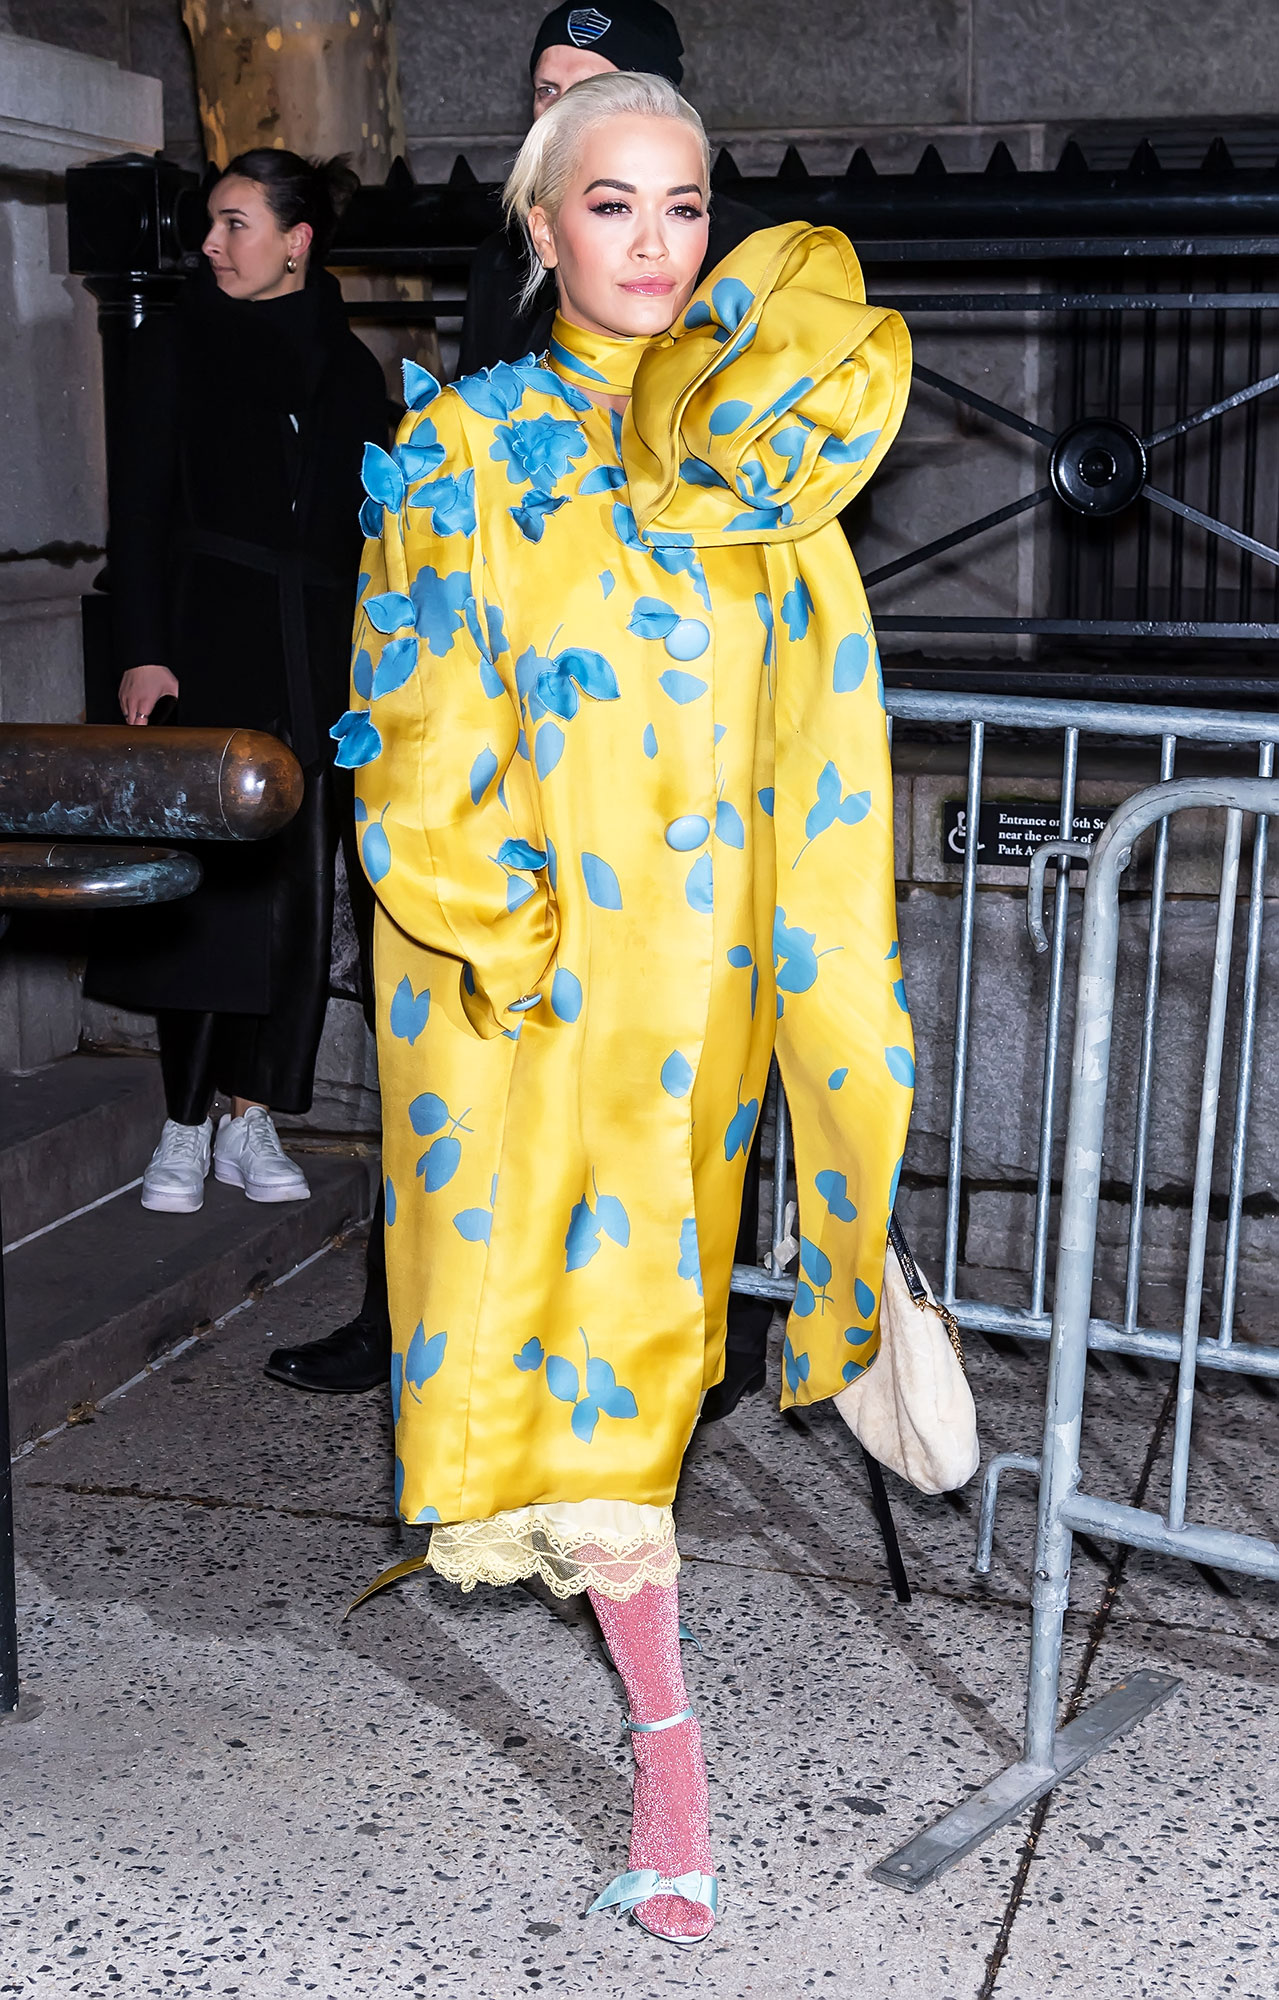 nyfw new york fashion week Rita Ora - Going bold, the singer wore a bright yellow and blue dress donned with an oversized flower on the neckline to the Marc Jacobs show on February 13.